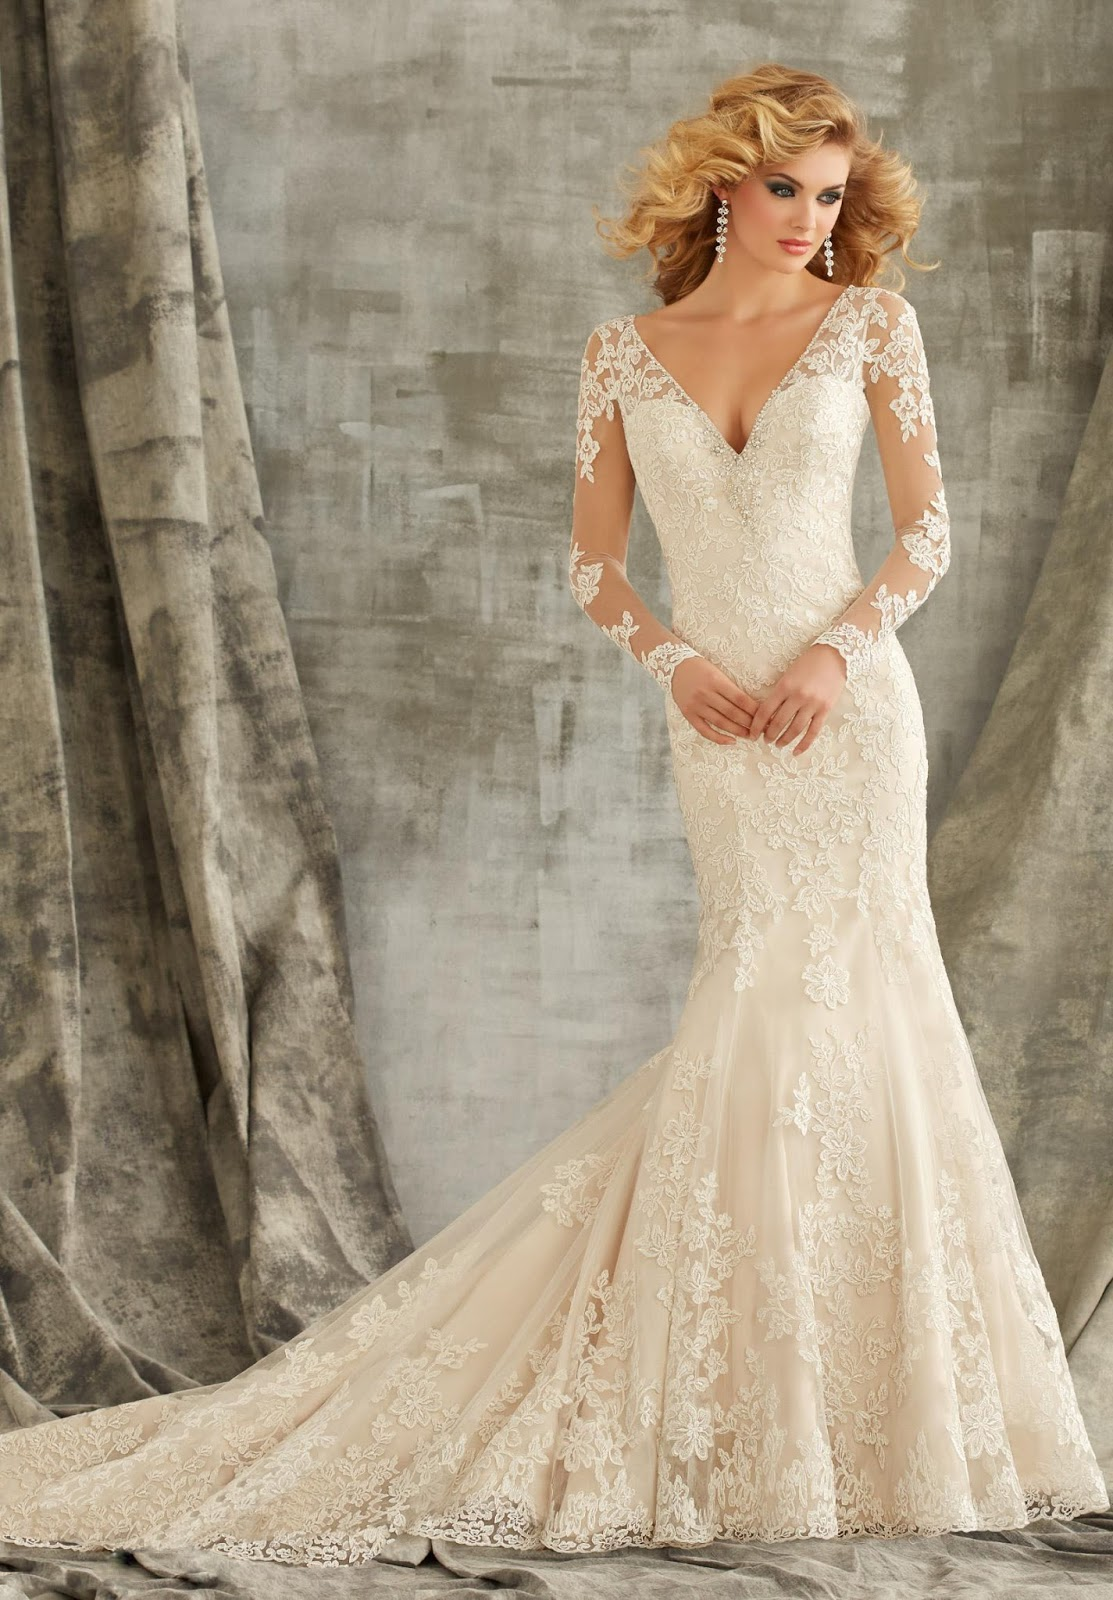 Unique-Beautiful-Wedding-Dress-Styles-for-Brides-and-Others